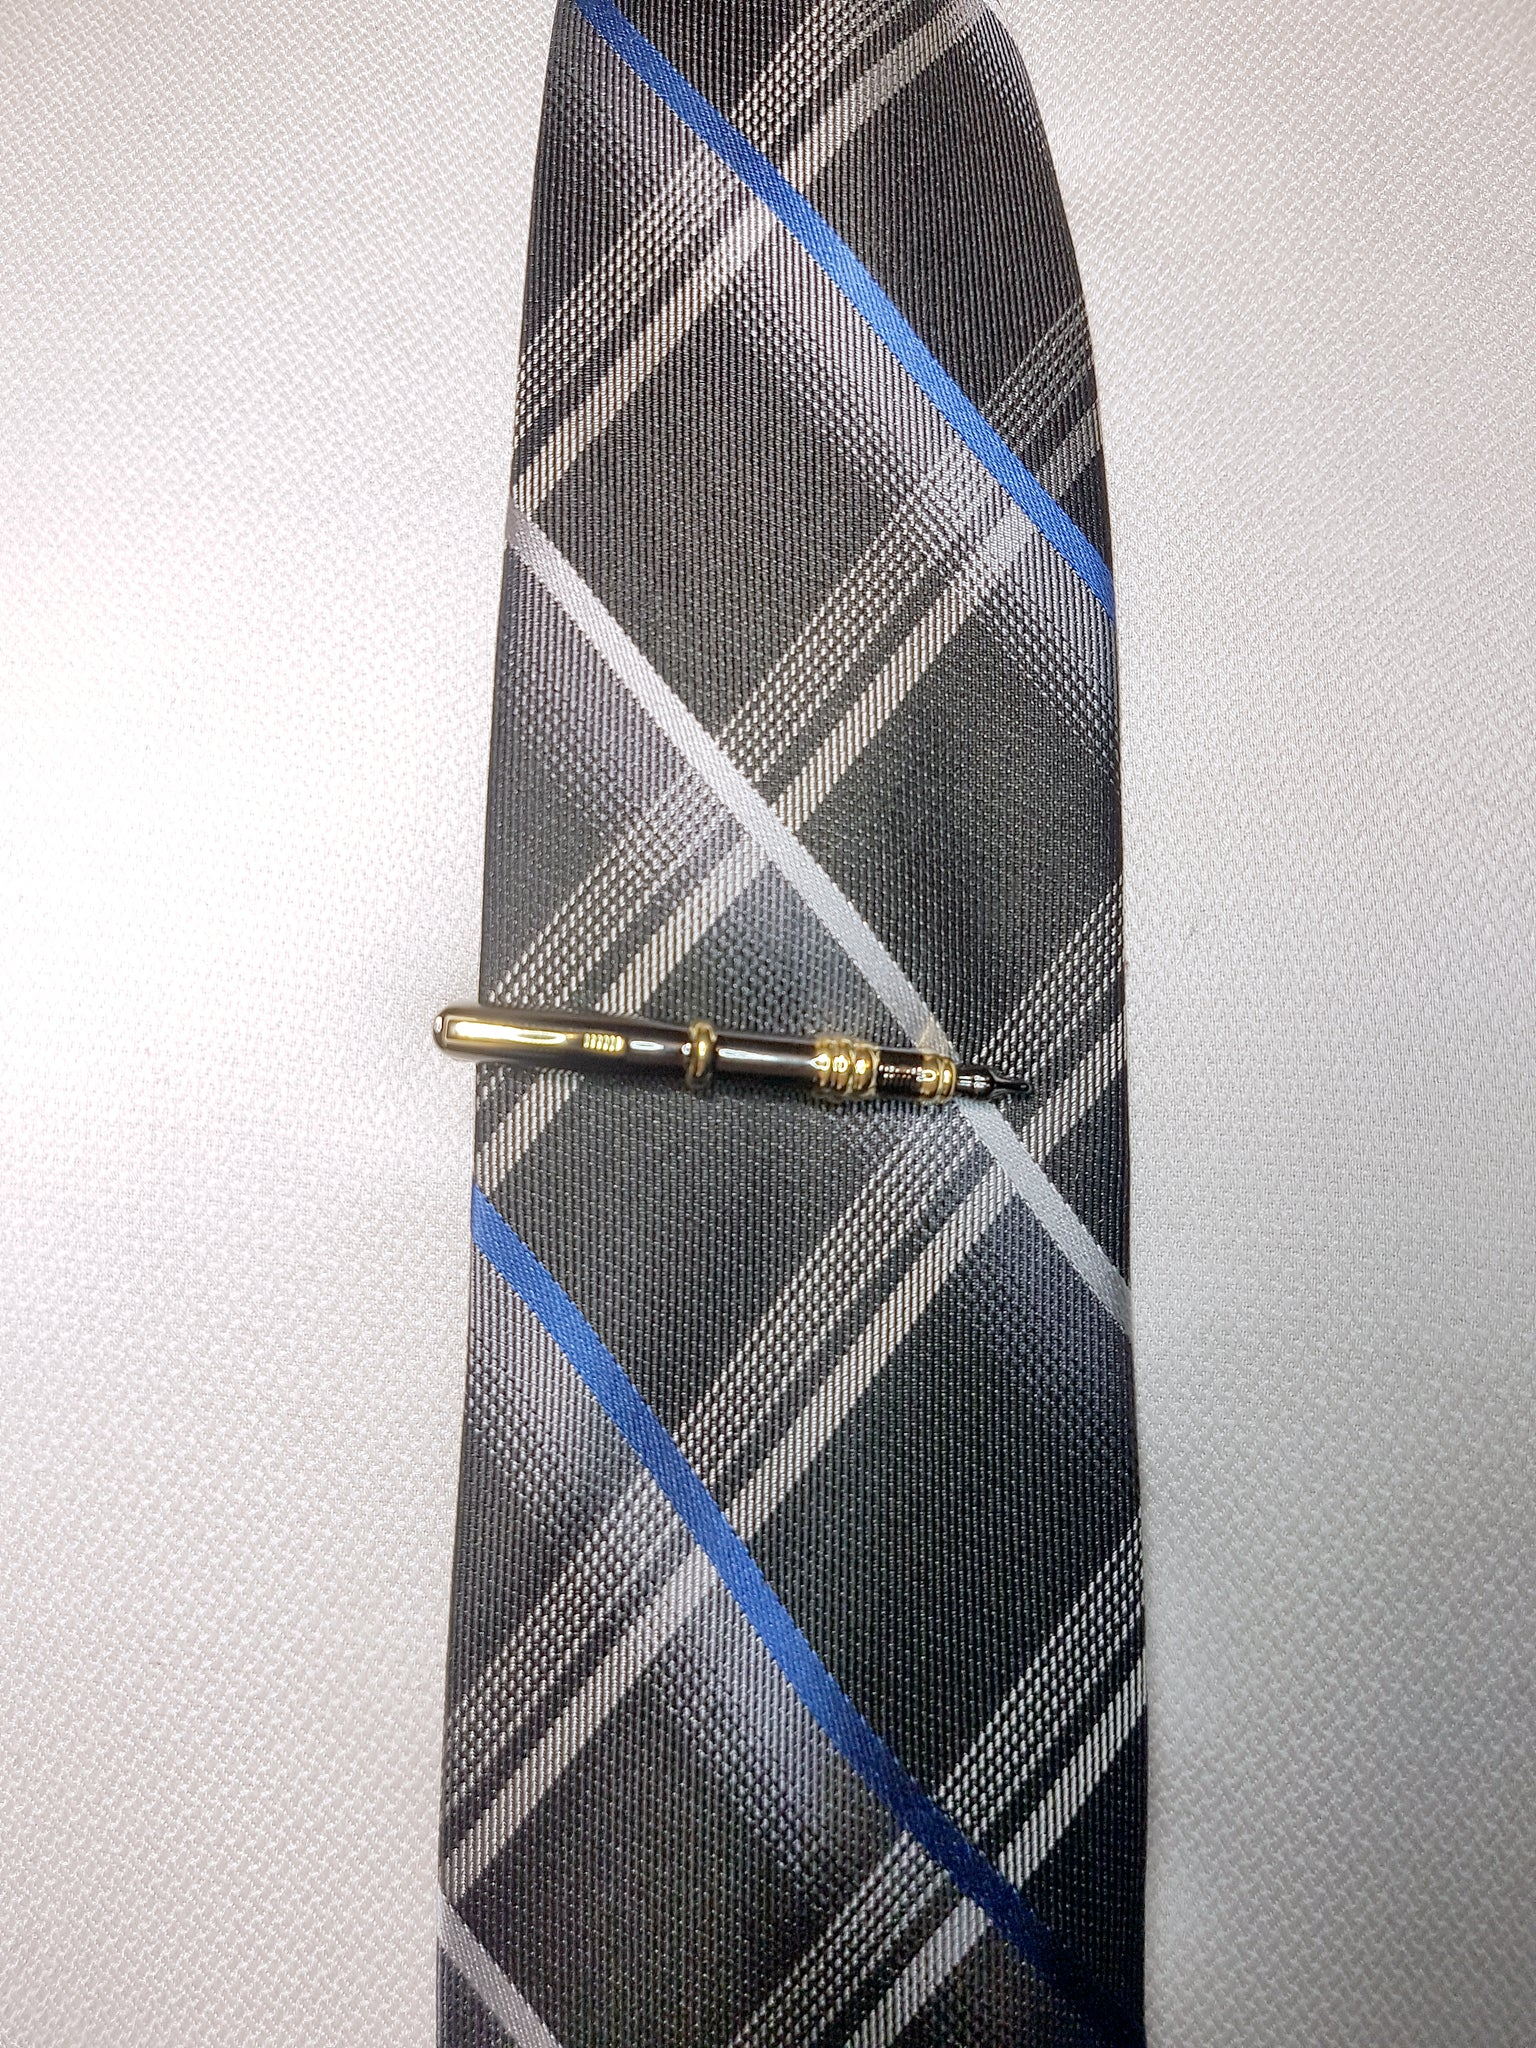 mens black and gold pen tie clip | The Perfect Gentleman